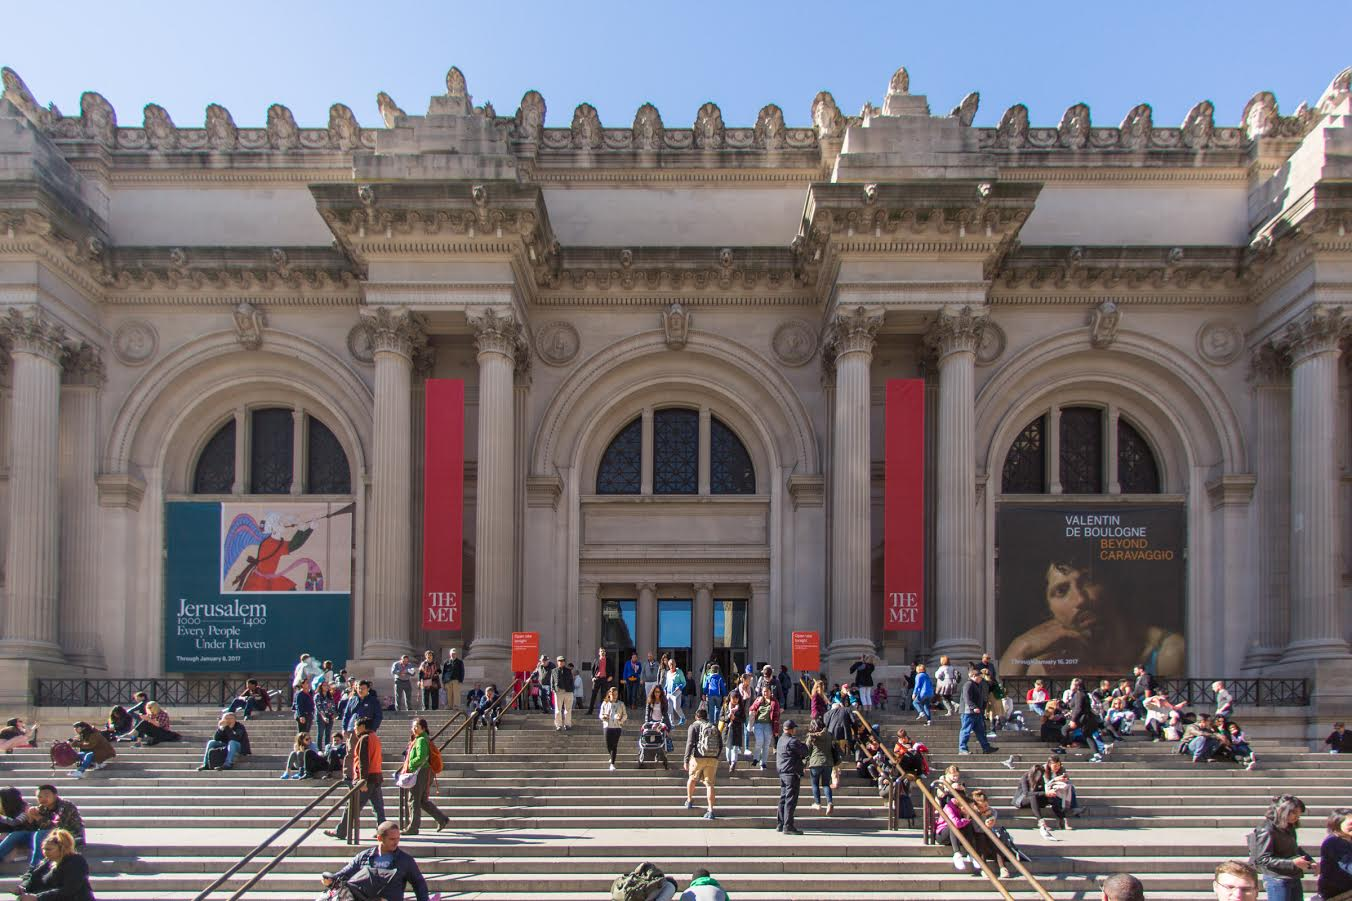 The Metropolitan Museum of Art David H. Koch Plaza.  Image courtesy of The Metropolitan Museum of Art. © The Metropolitan Museum of Art.